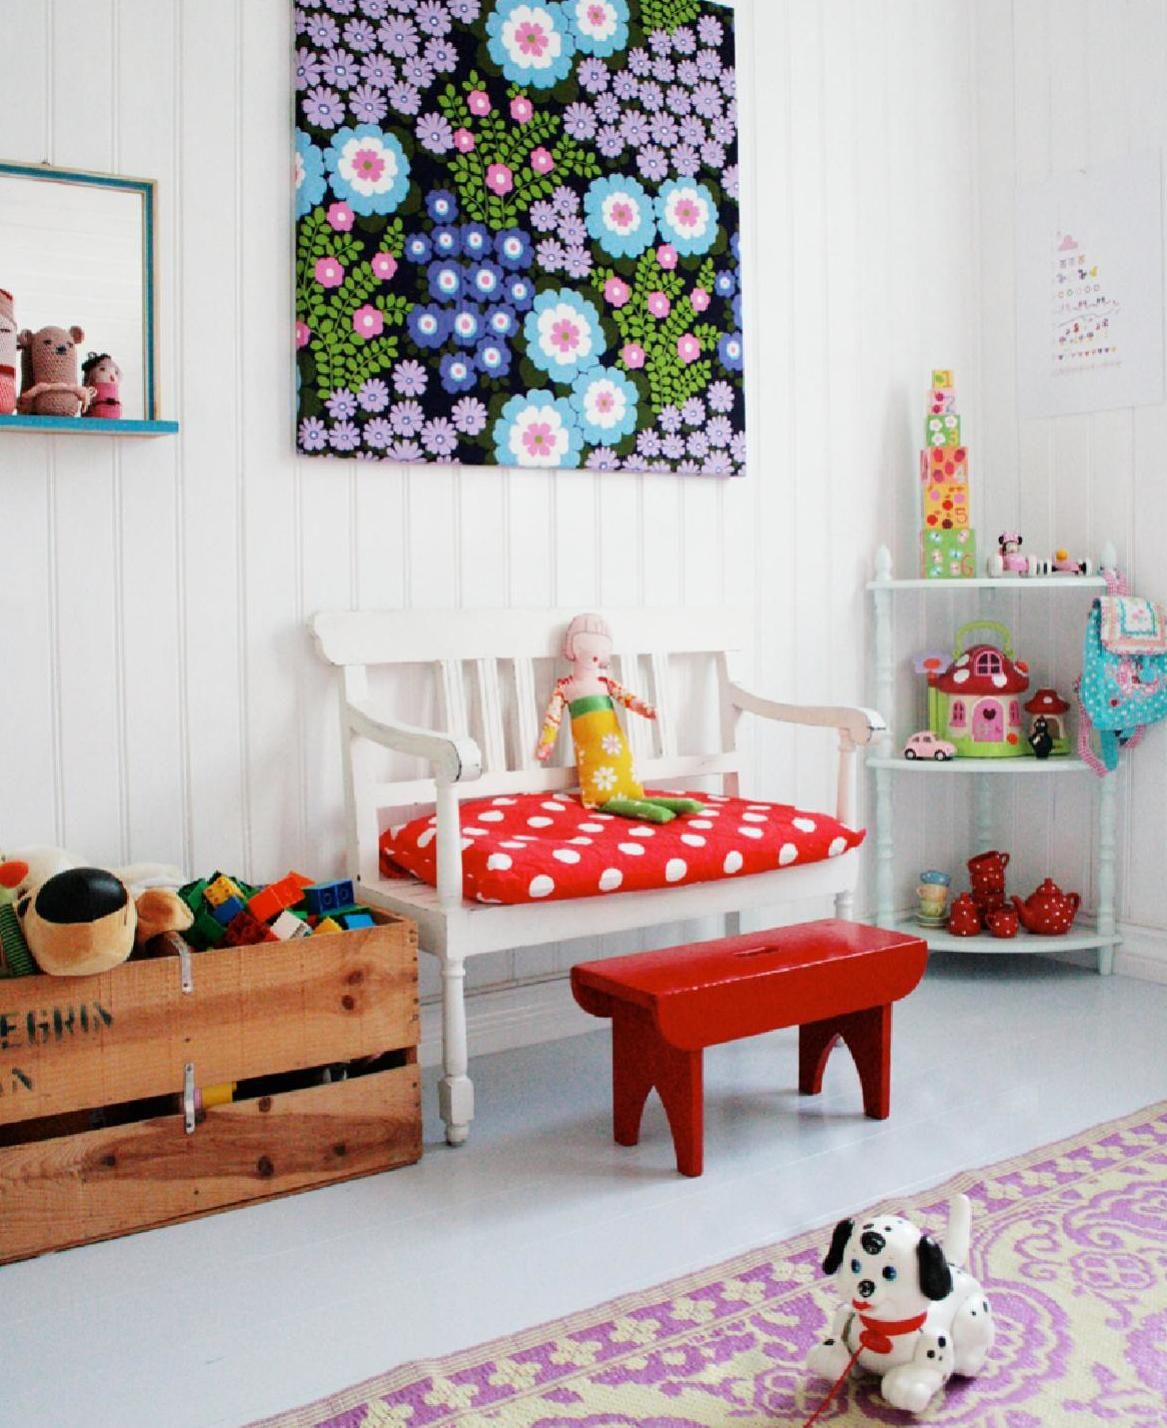 3 By Fryd Colorful Kids Room Kids Room Design Nursery To Toddler Room